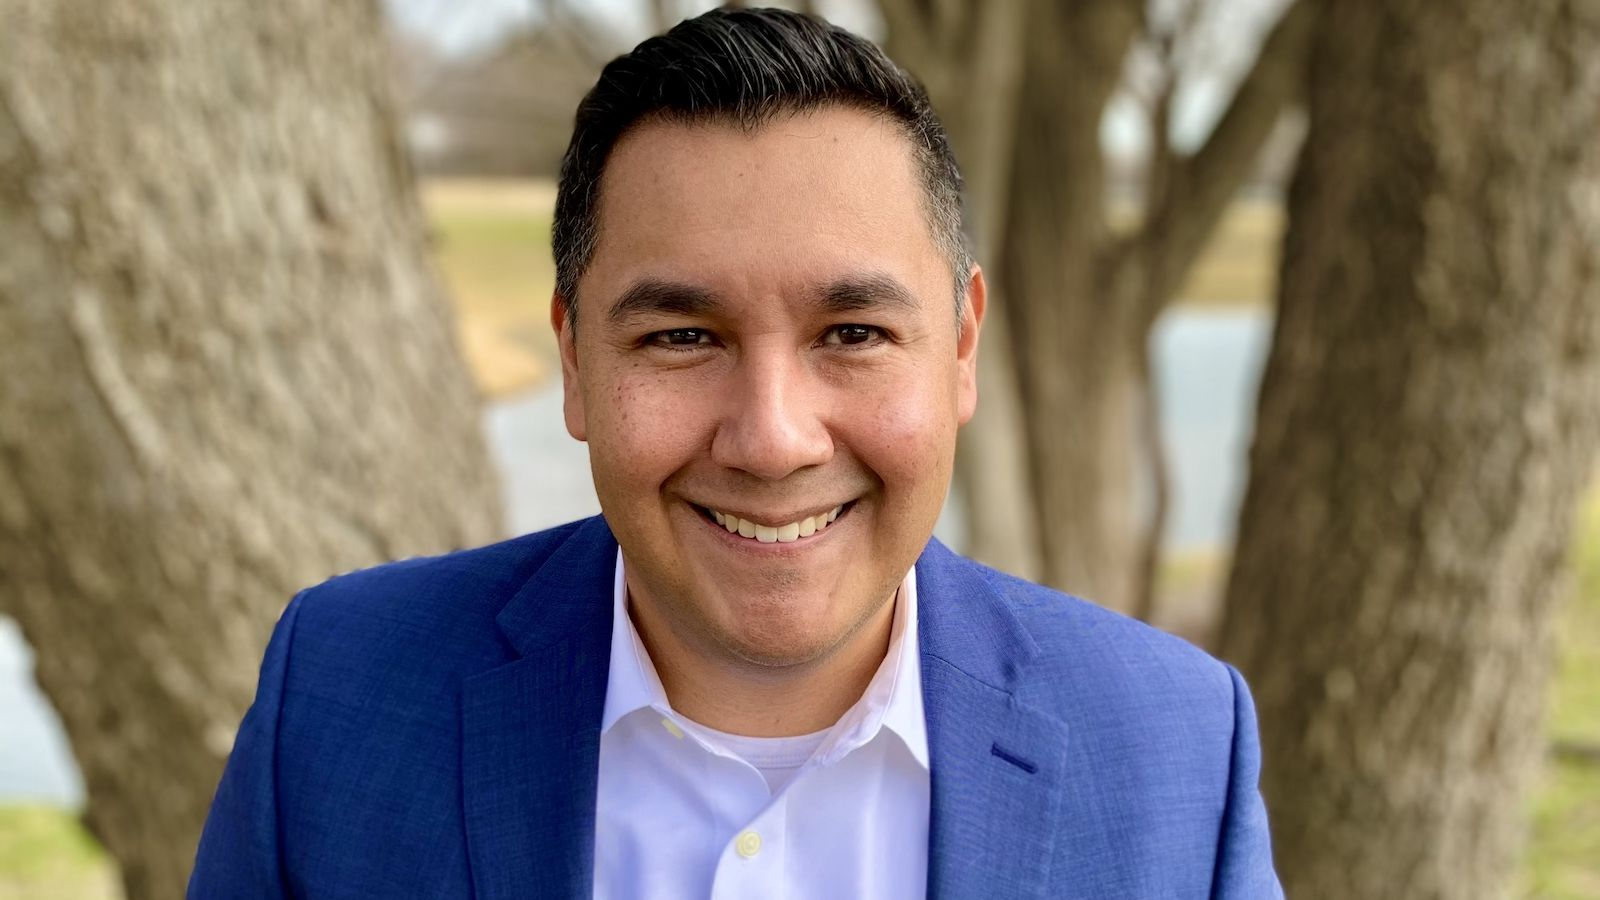 """""""My vision and hope is that we will receive enough community support to one day have a house or building to shelter 10 or 20 youth a night or even bigger. We had to think outside the box, and we have to start somewhere,"""" says Elevate North Texas founder Jason Vallejo."""